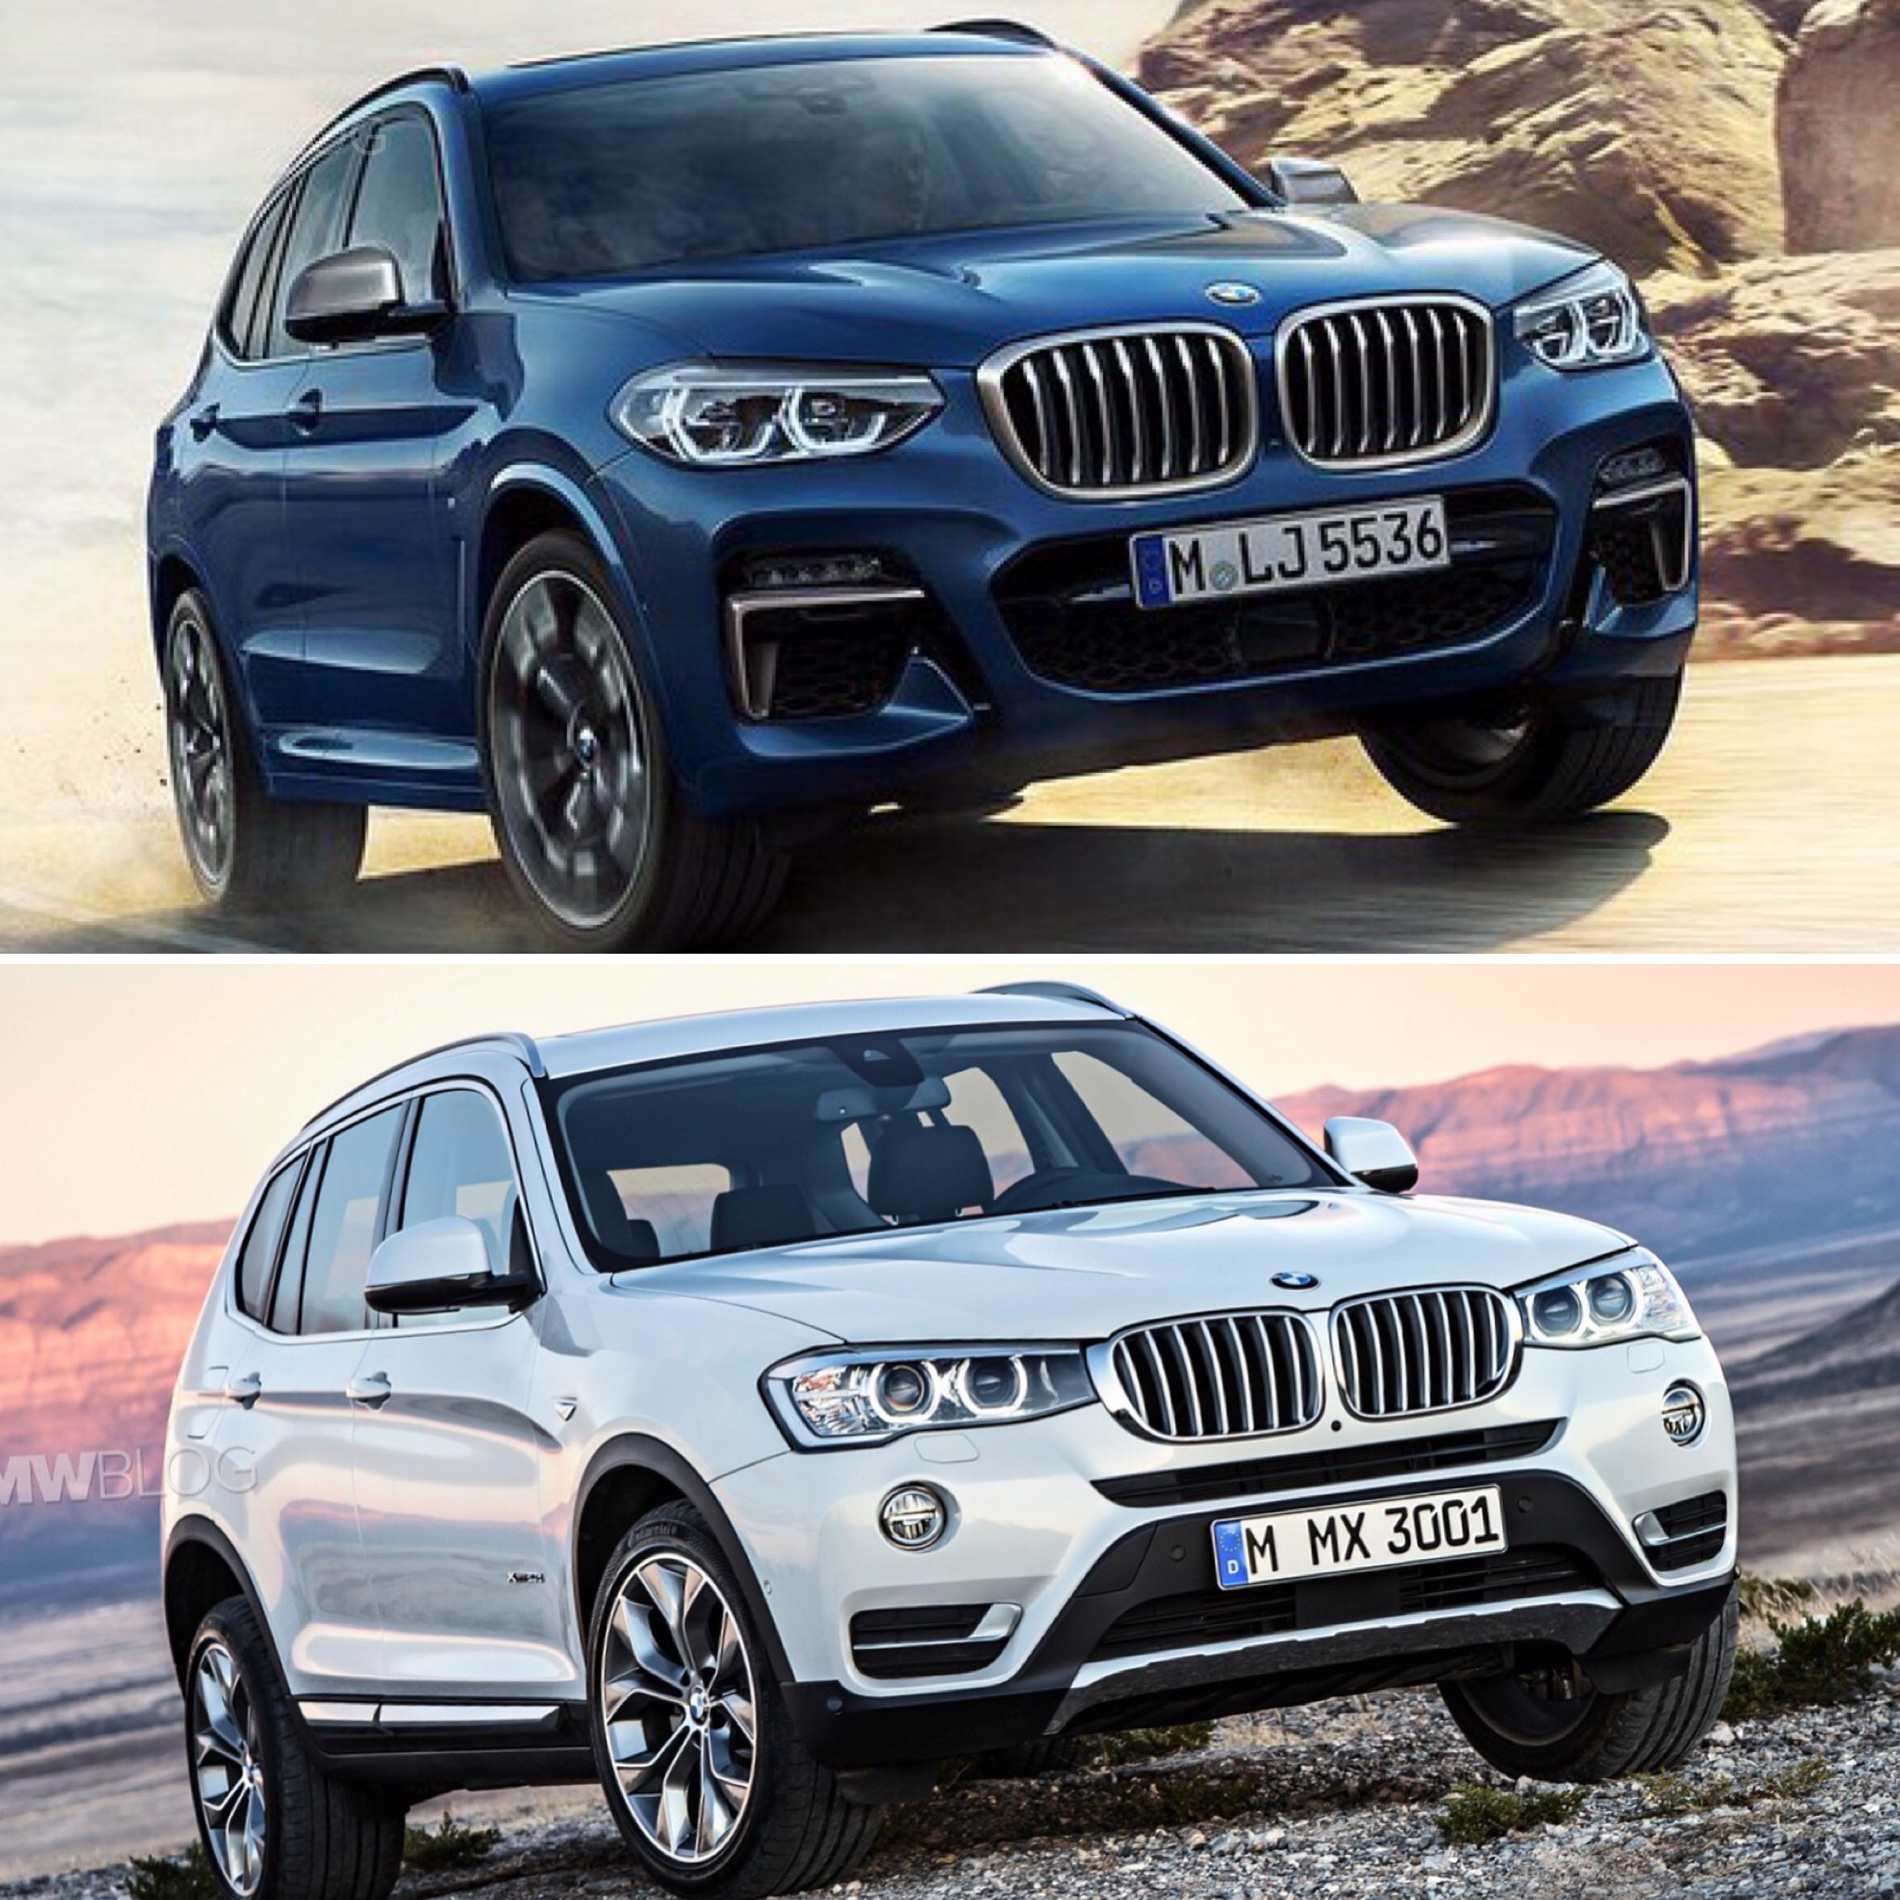 Bmw Old Models >> Photo Comparison: G01 BMW X3 vs F25 BMW X3